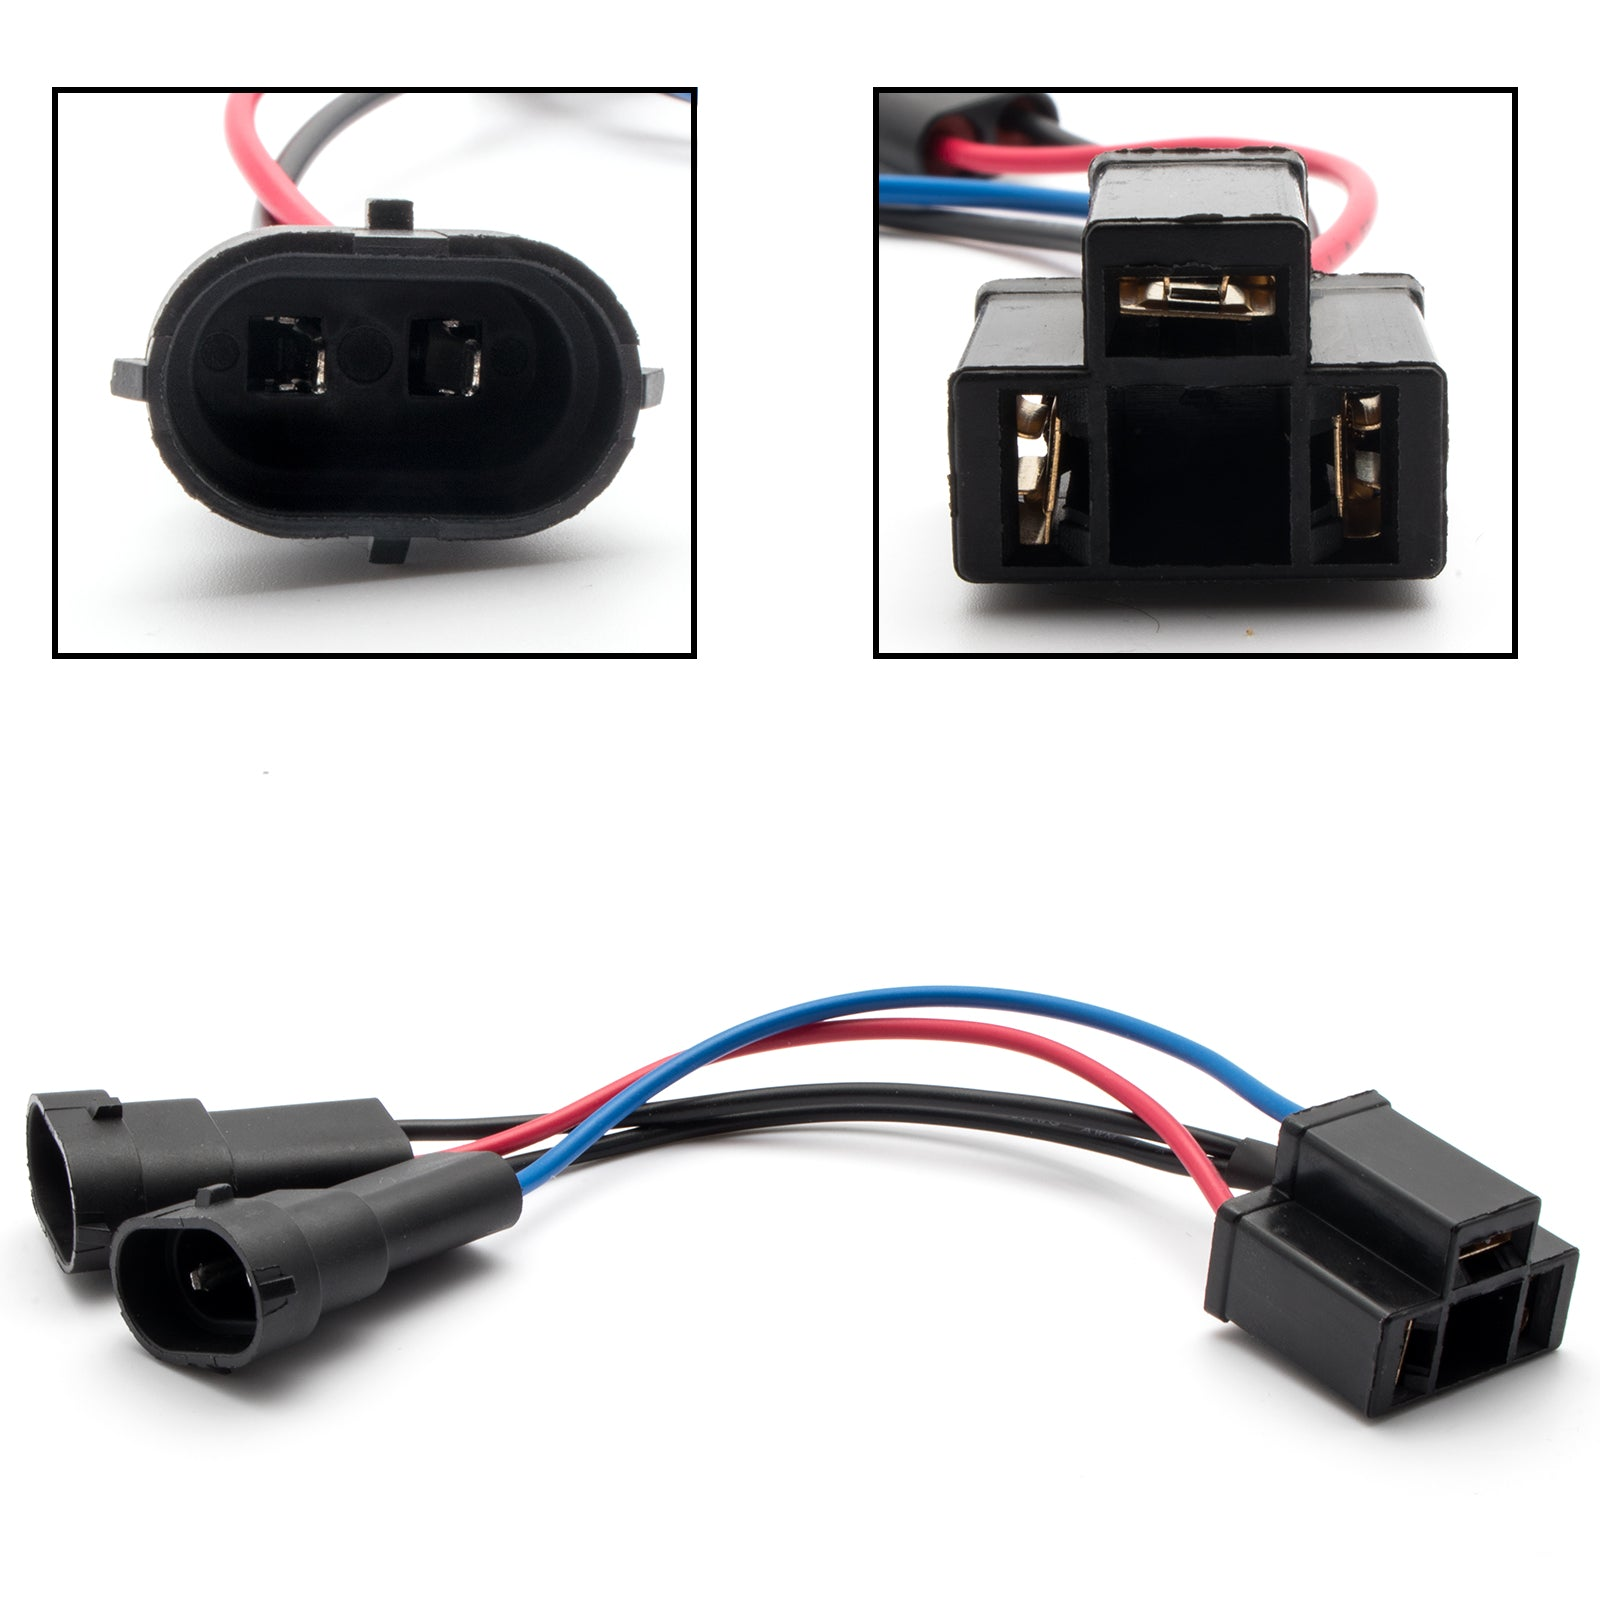 2pcs H11 H9 to H4 Conversion Wiring Harness Cable Socket ... Harley Davidson Key Light Wiring Harness on